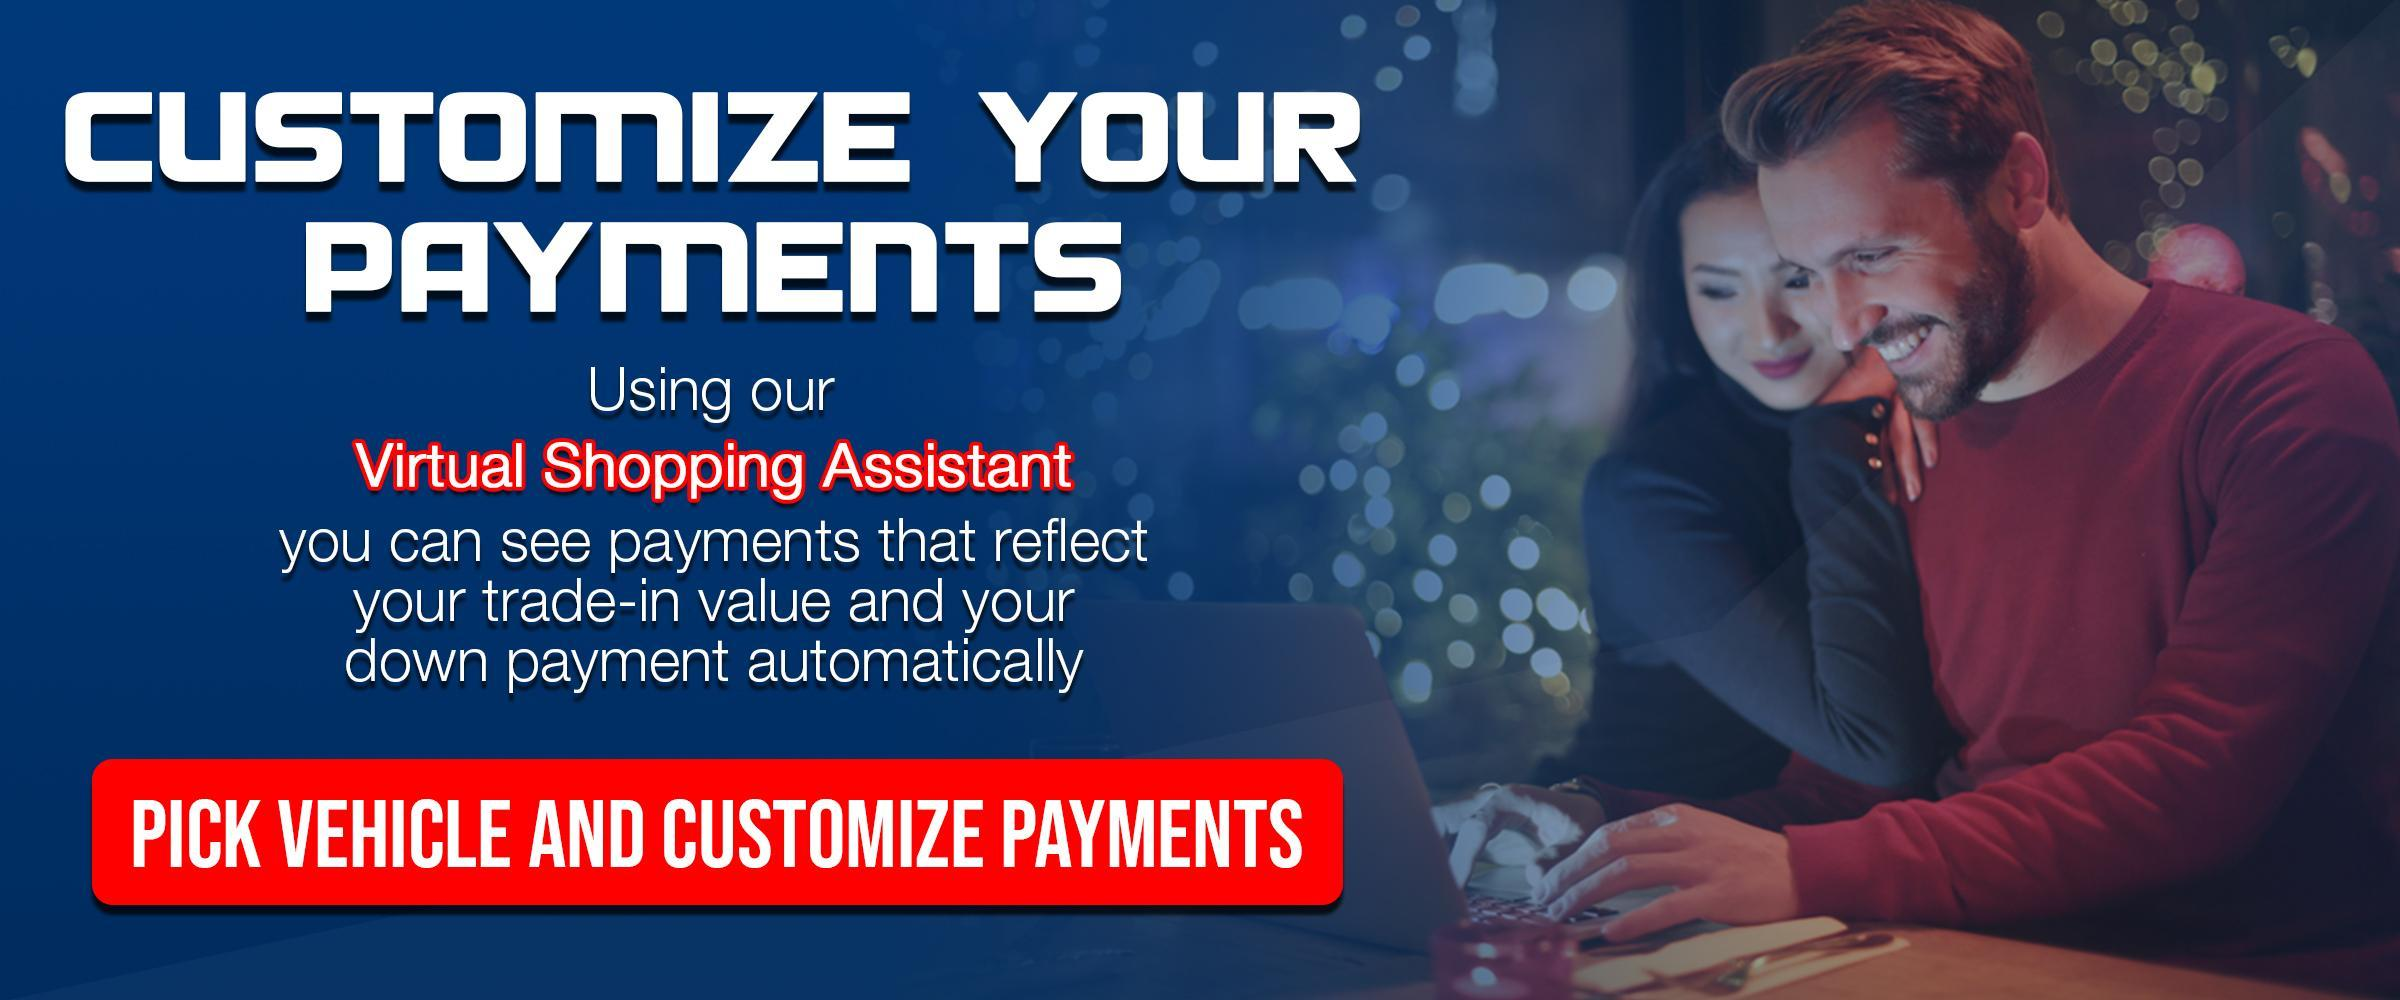 Customize Your Payment with our Virtual Shopping Assistant | Campbell River Hyundai